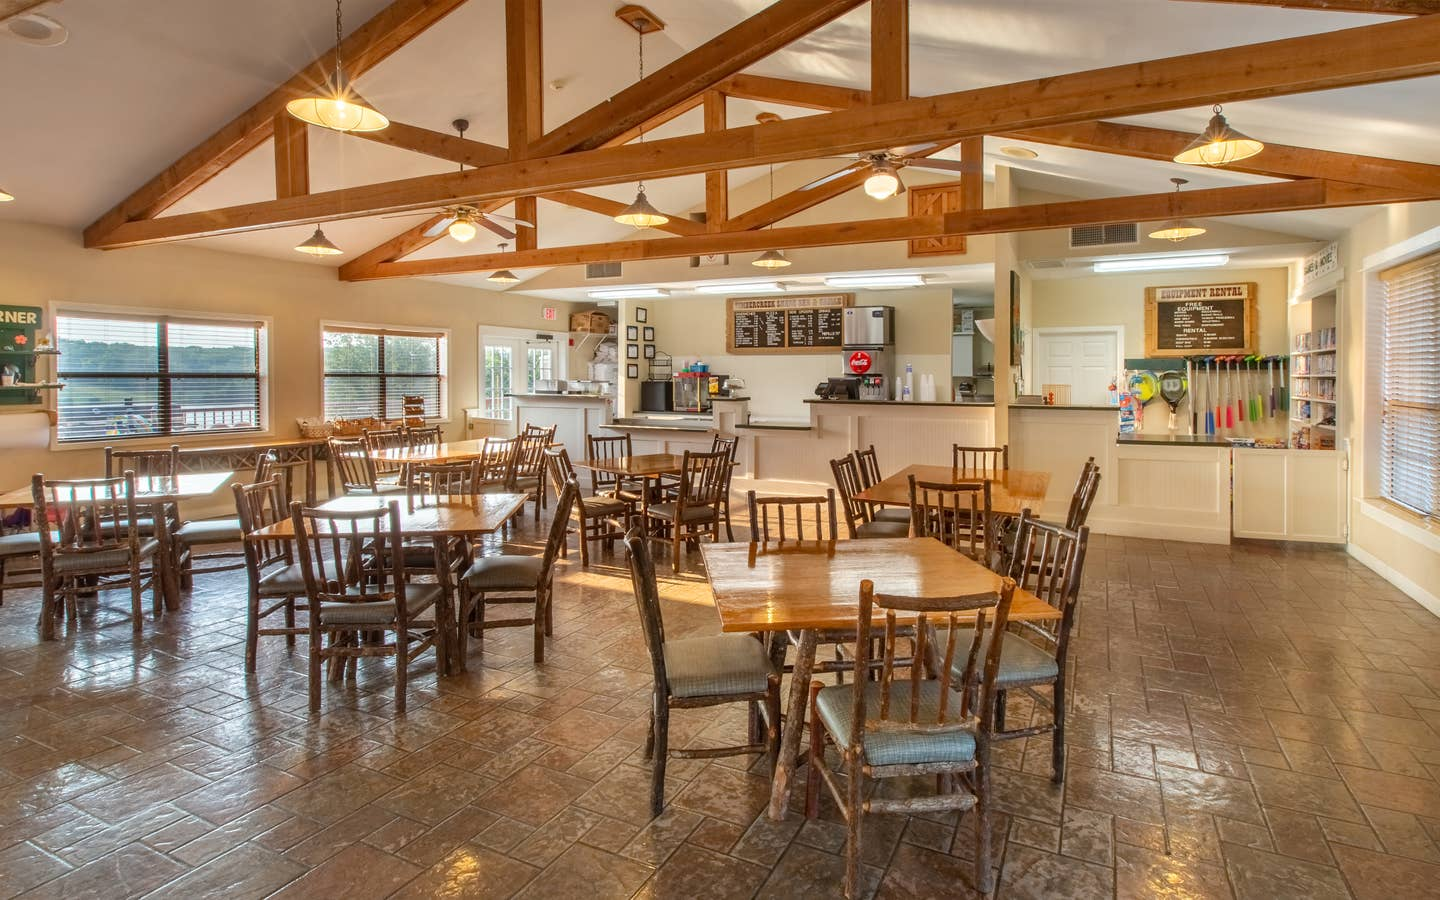 Timber Creek Snack Bar & Grille with indoor seating at Timber Creek Resort in De Soto, Missouri.